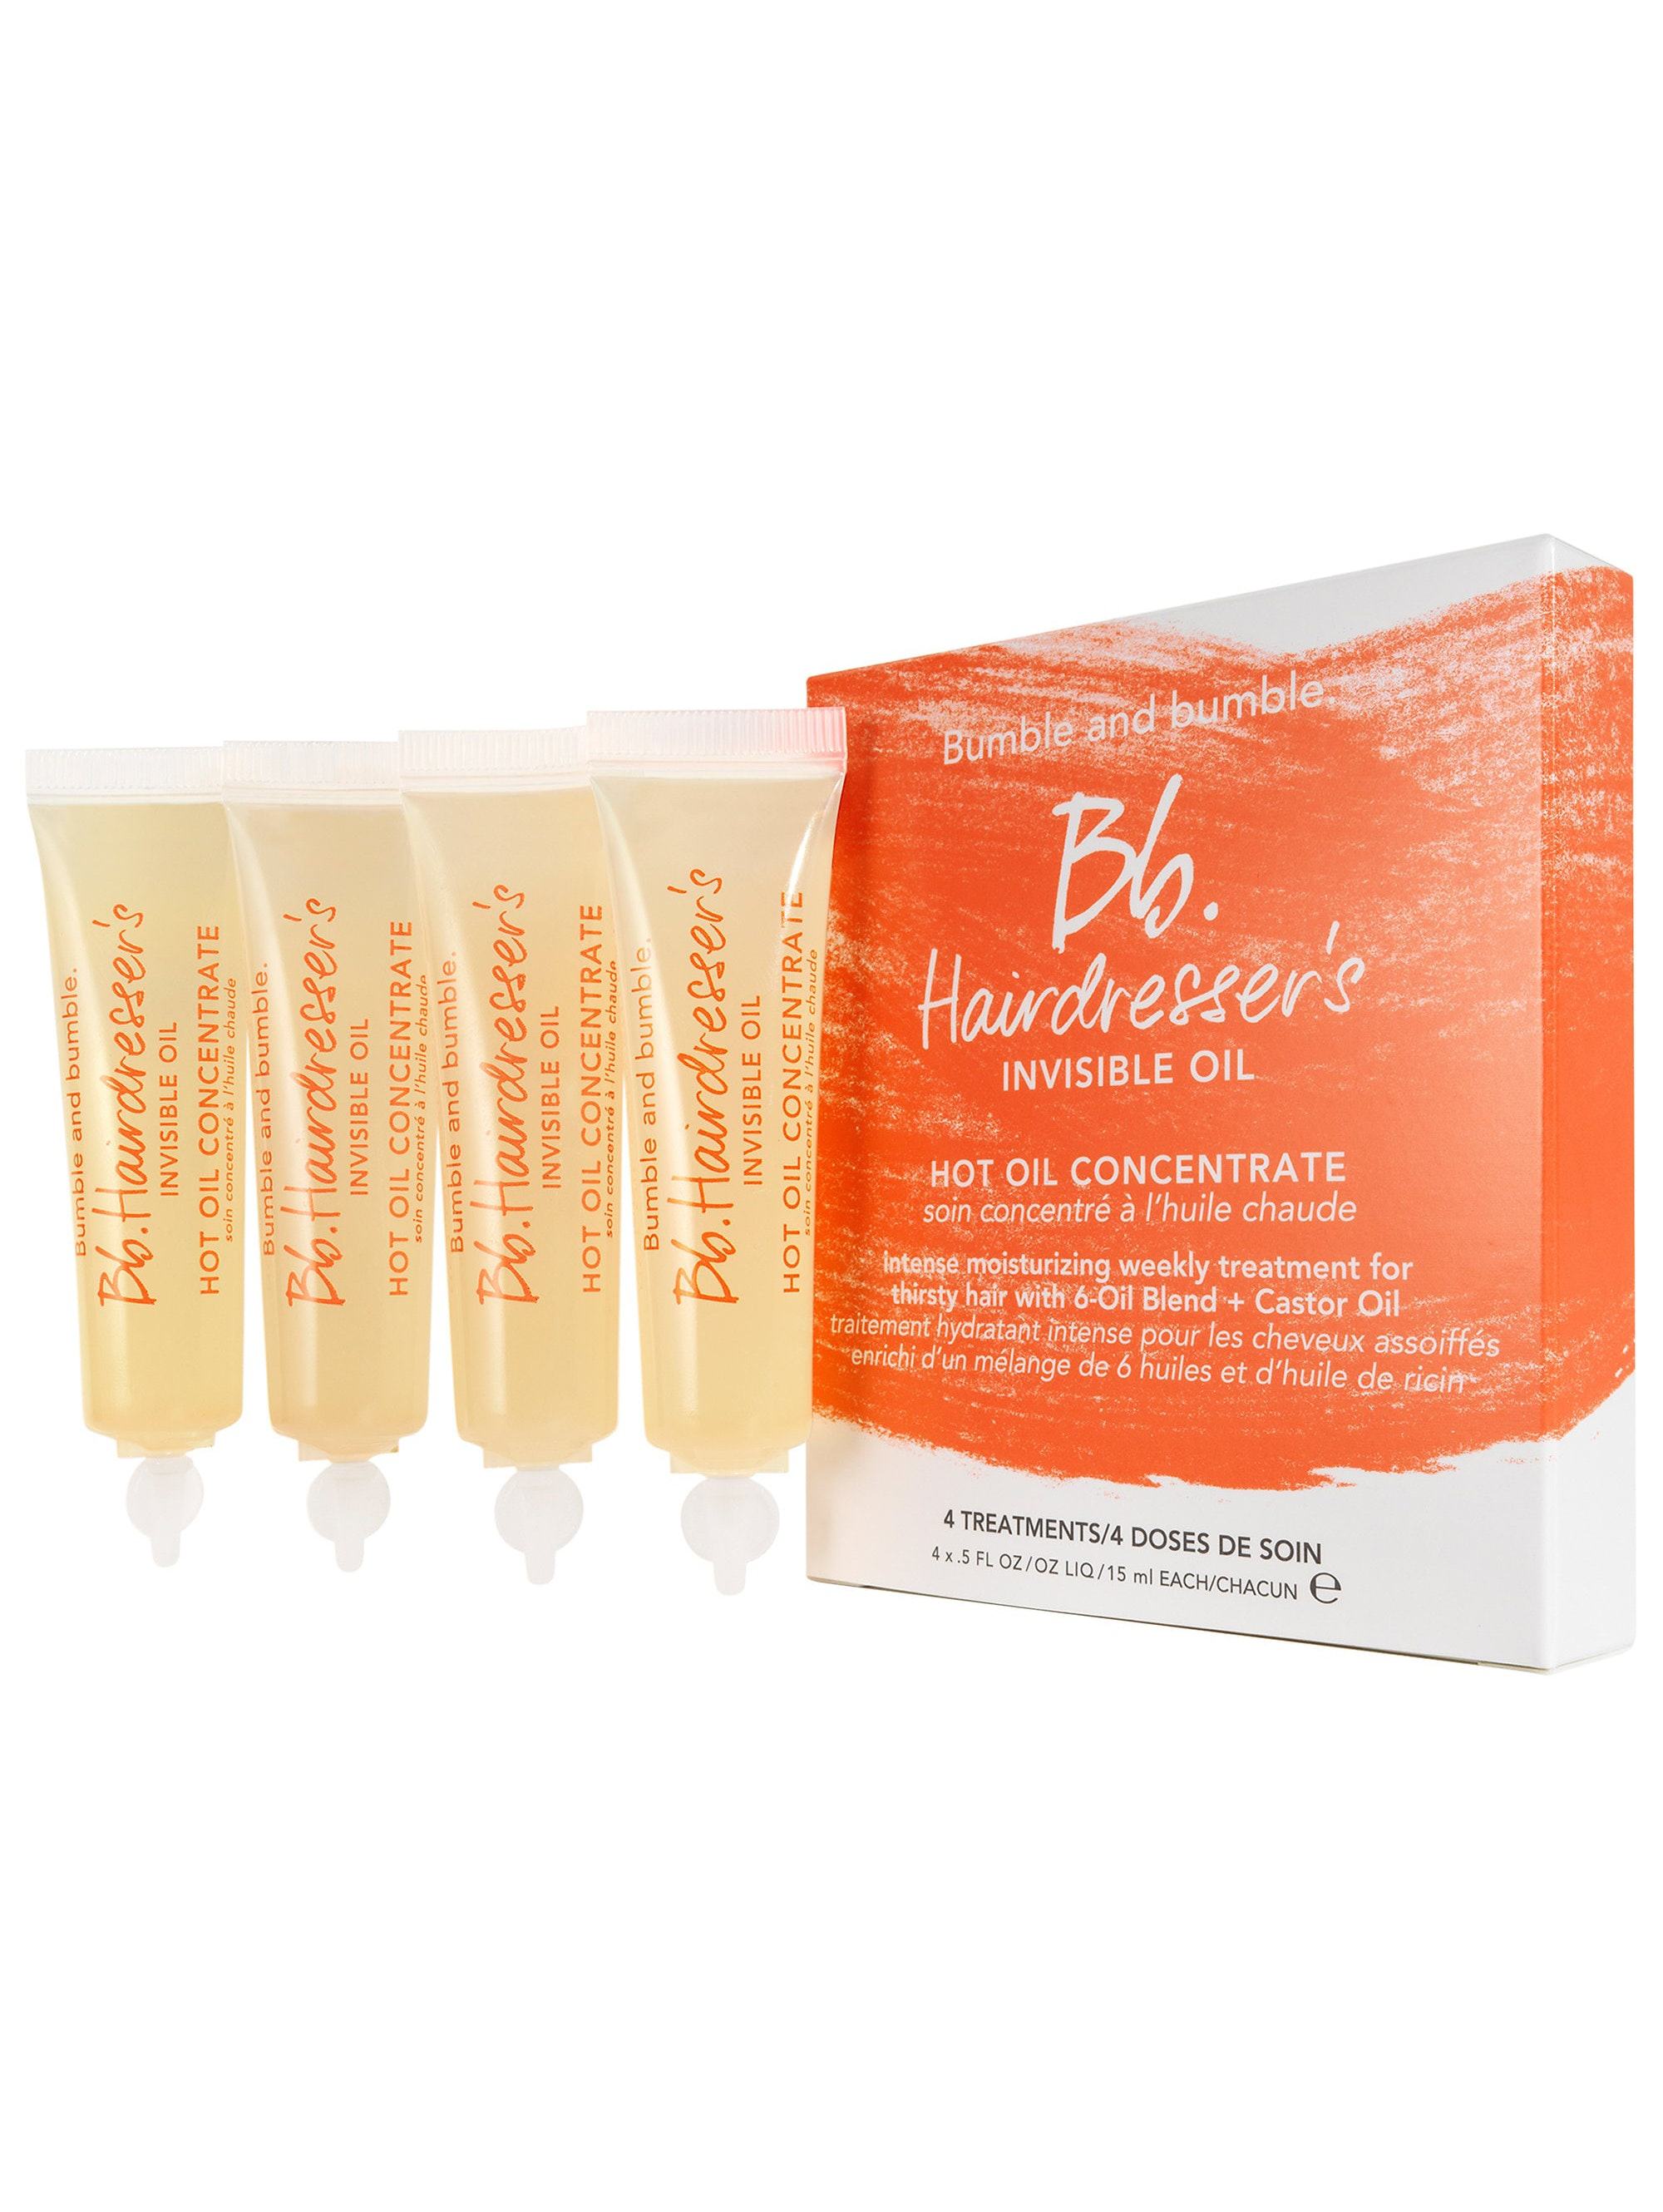 Bumble and bumble. Bb. Hairdresser's Invisible Oil Hot Oil Concentrate